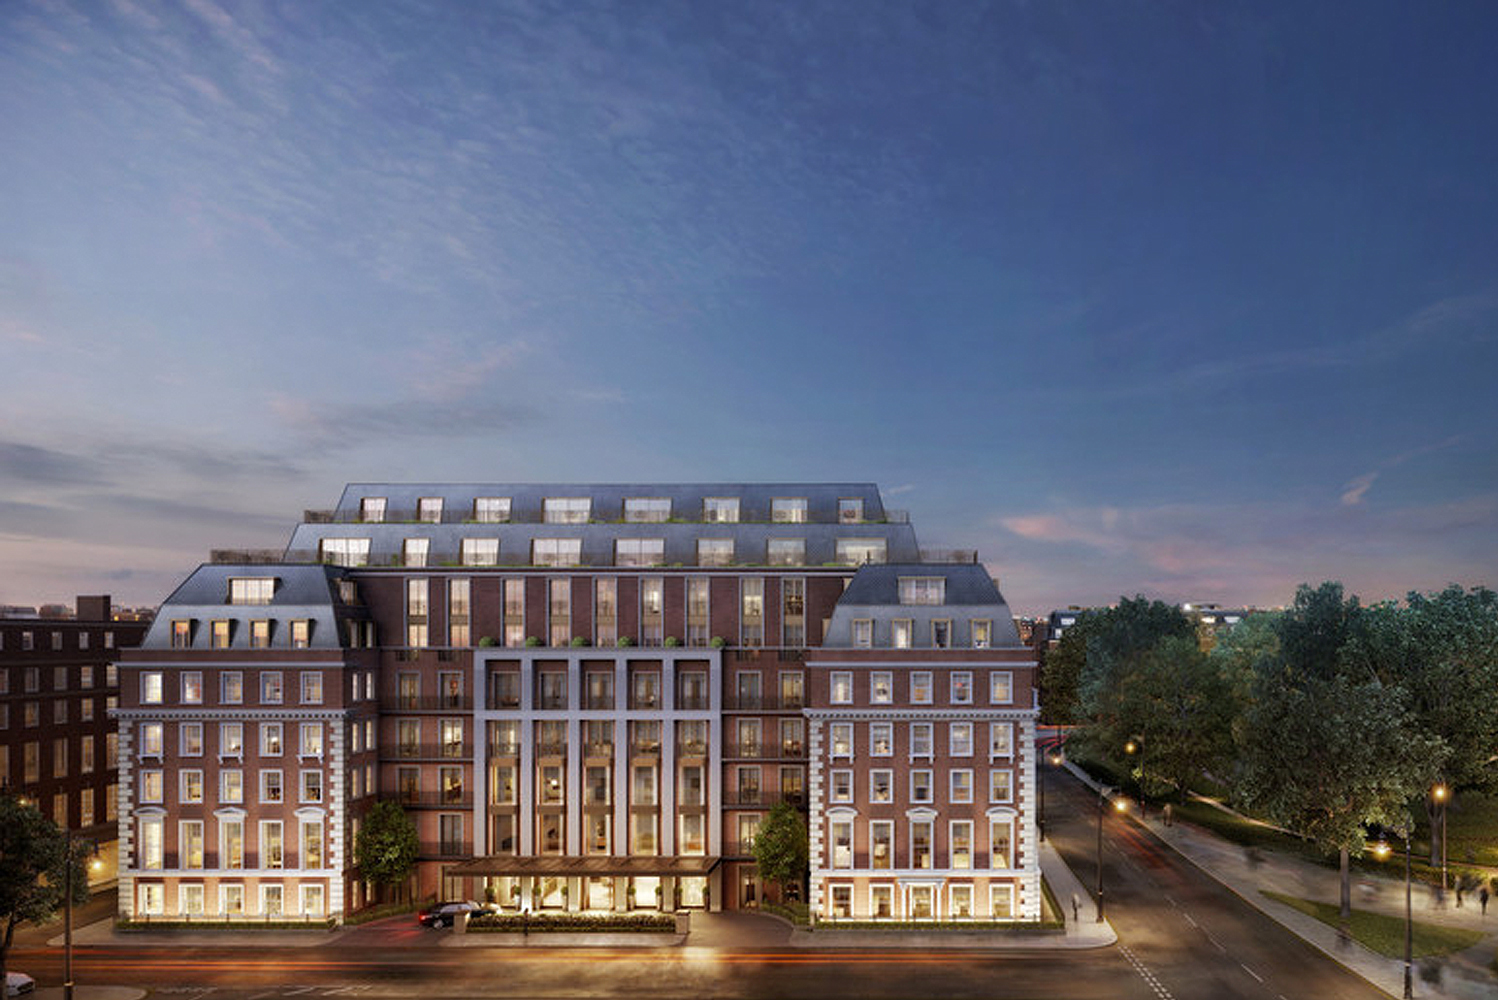 Finchatton and Four Seasons Hotels and Resorts unveiled the first look at Twenty Grosvenor Square, A Four Seasons Residence.